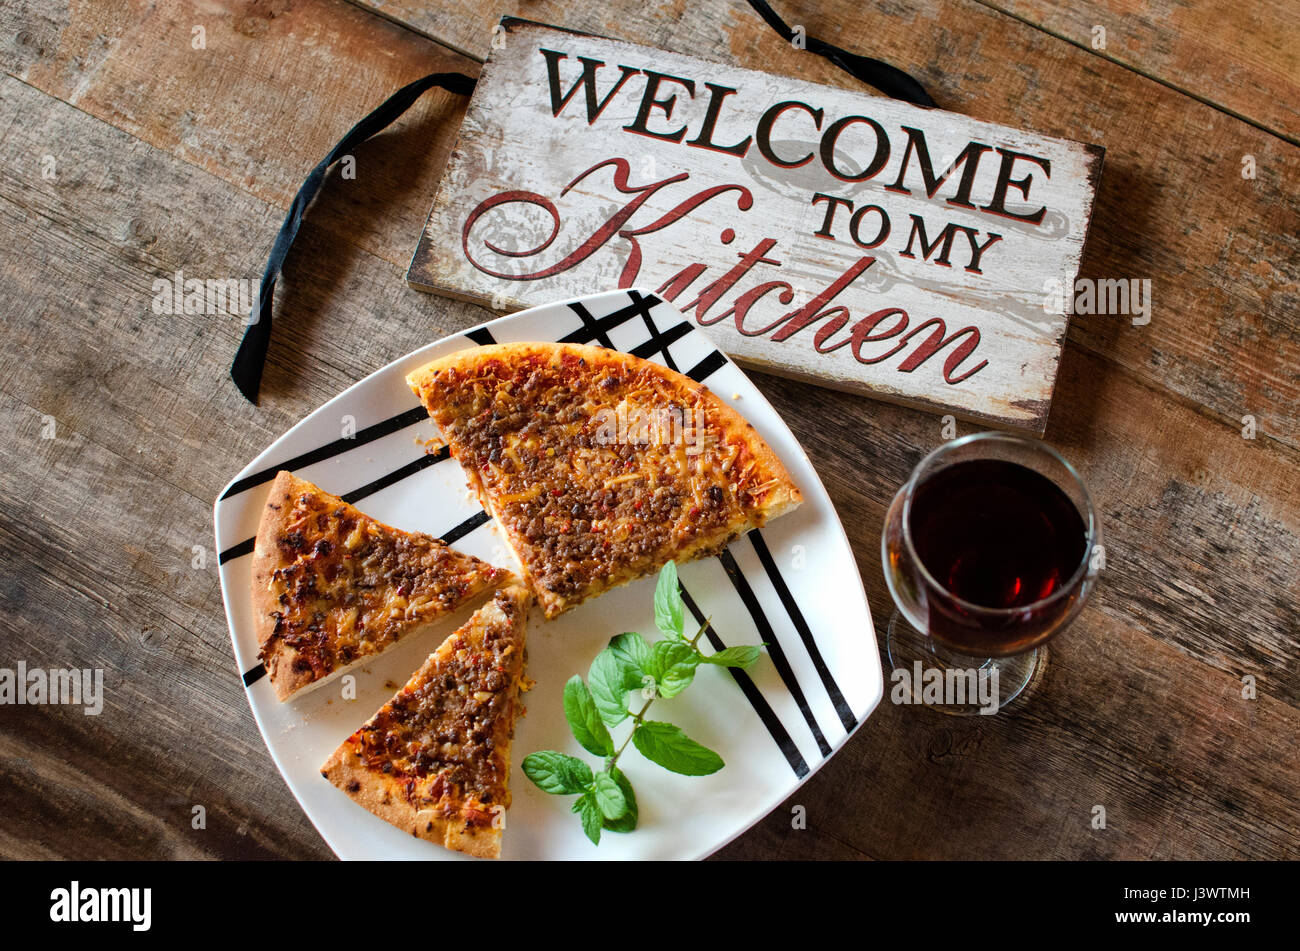 Pizza Welcome To My Kitchen Stock Photo Alamy